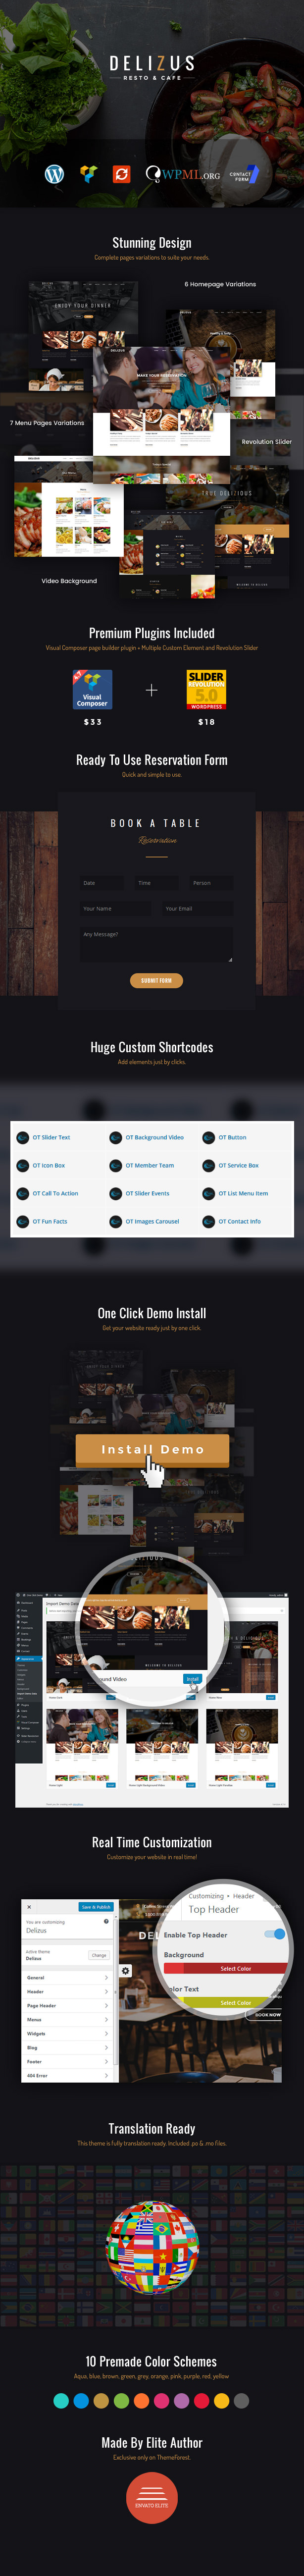 Delizus | Restaurant Cafe WordPress Theme